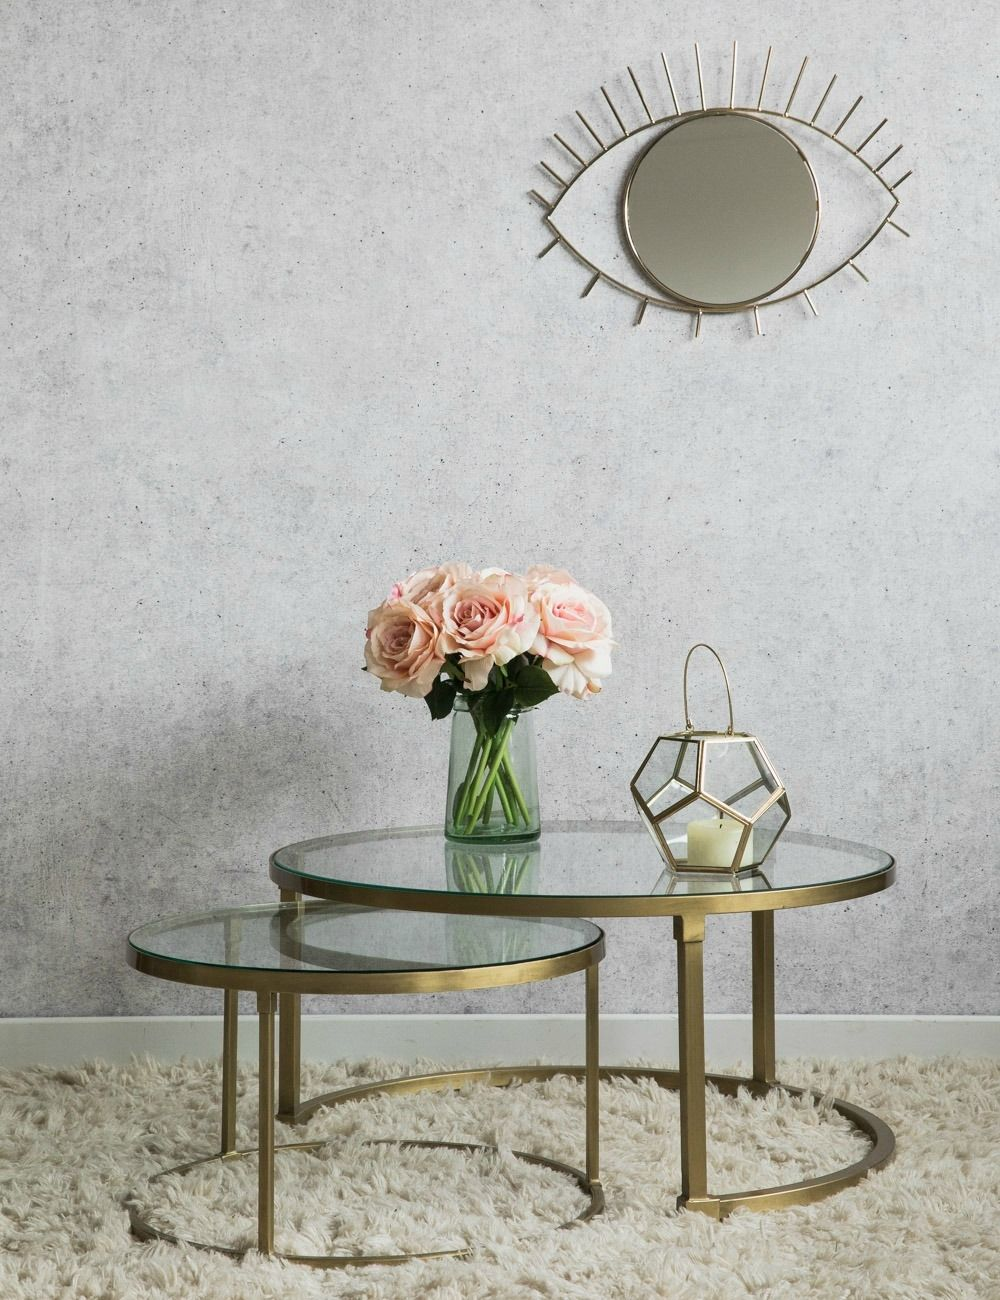 Coco nesting round glass coffee tables in 2020 round